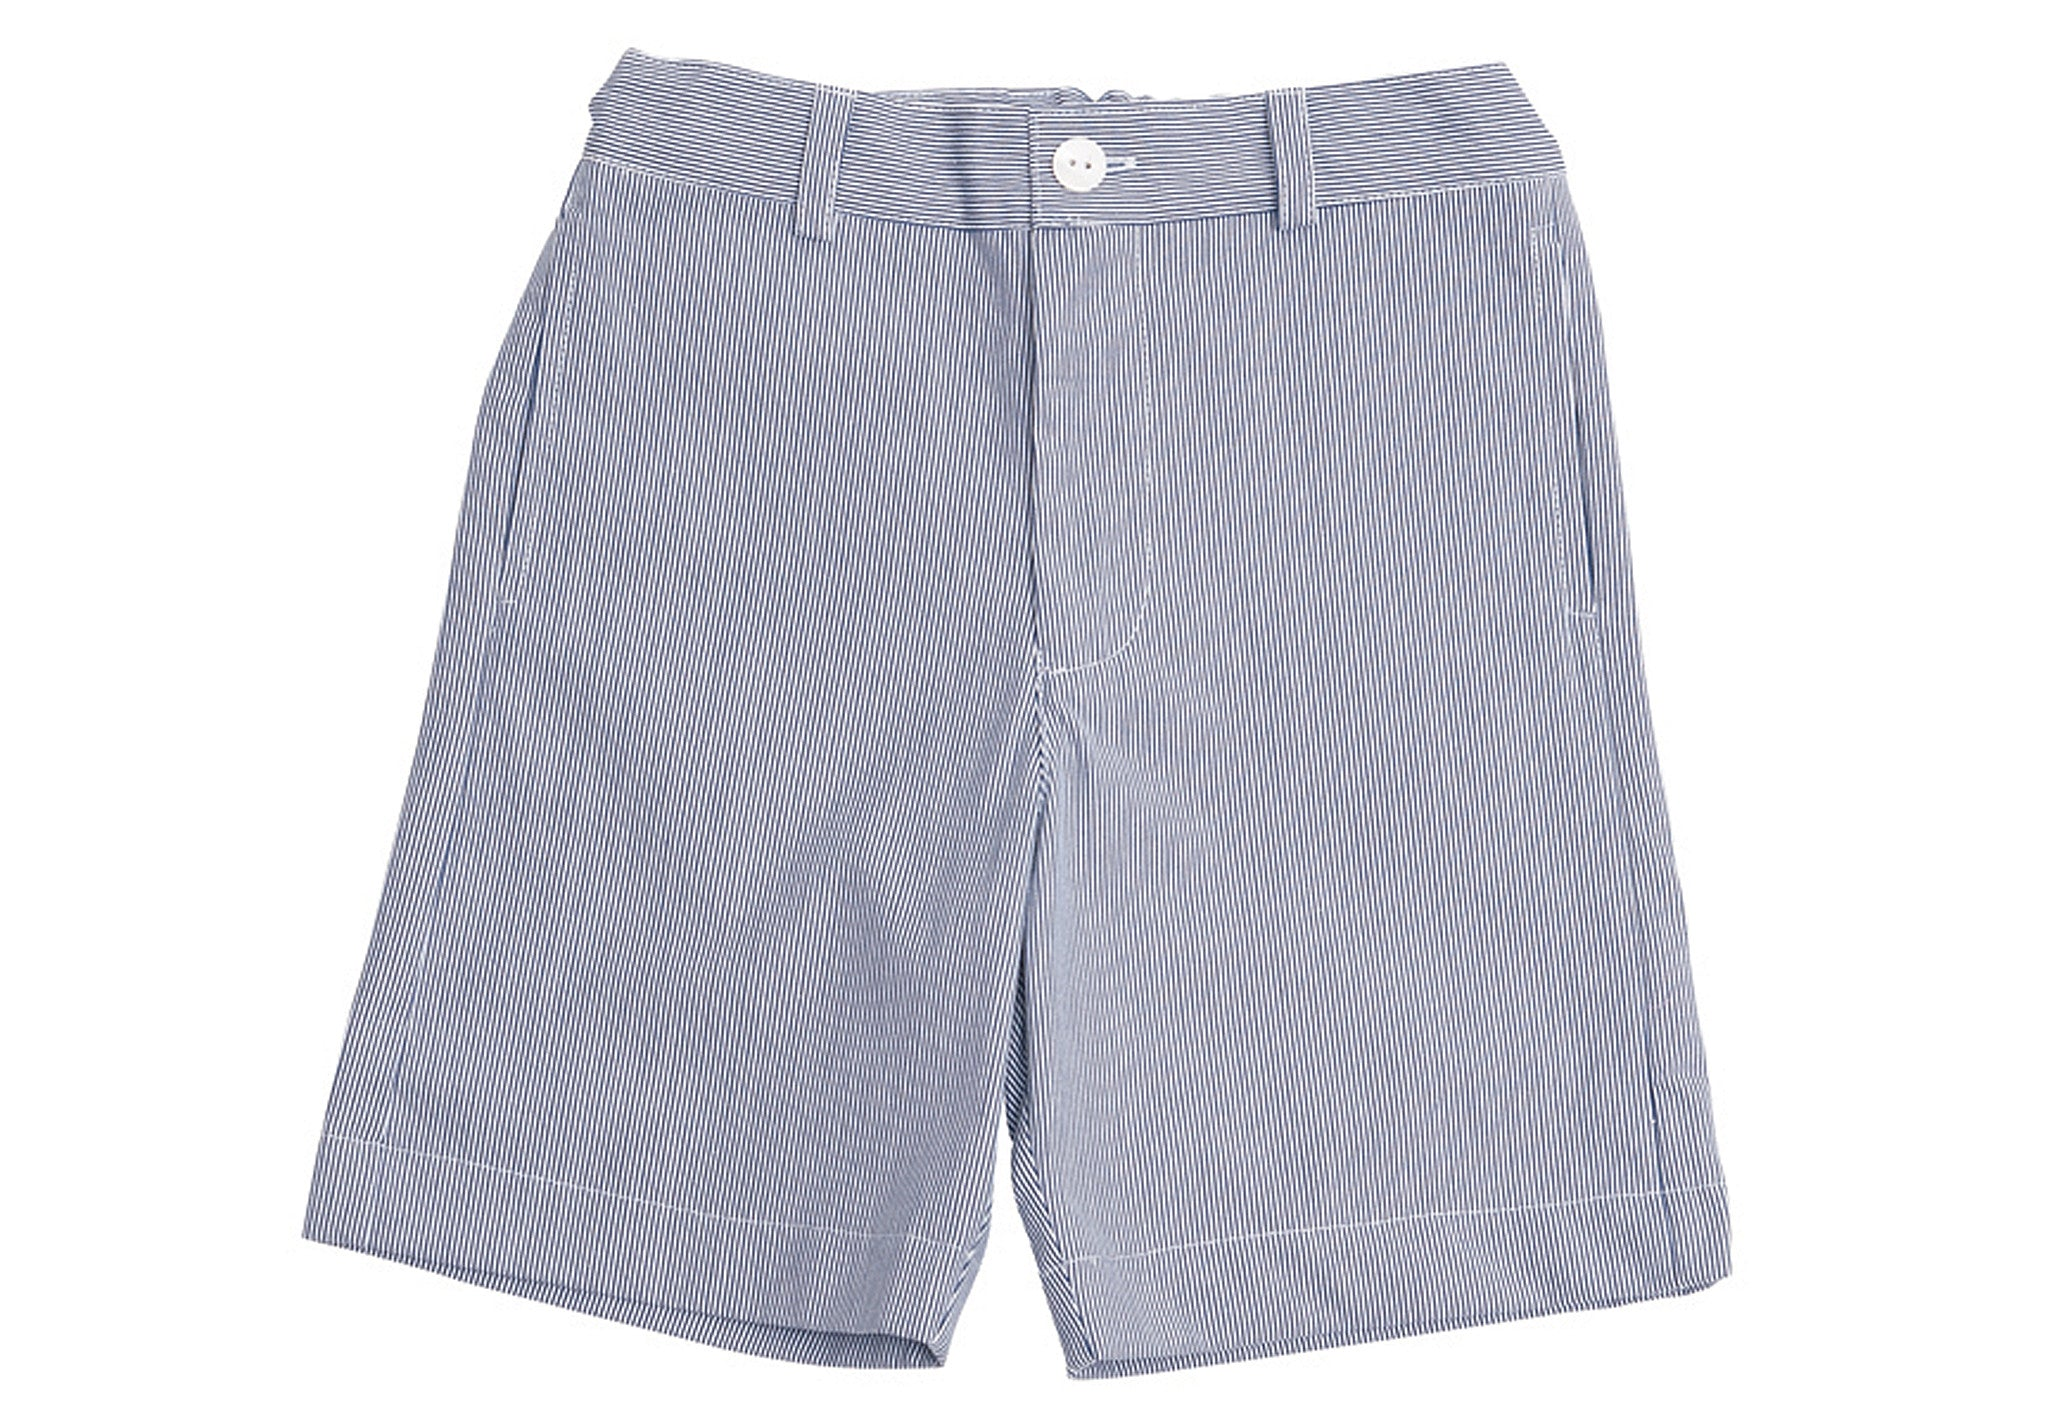 alex flat front shorts navy seersucker